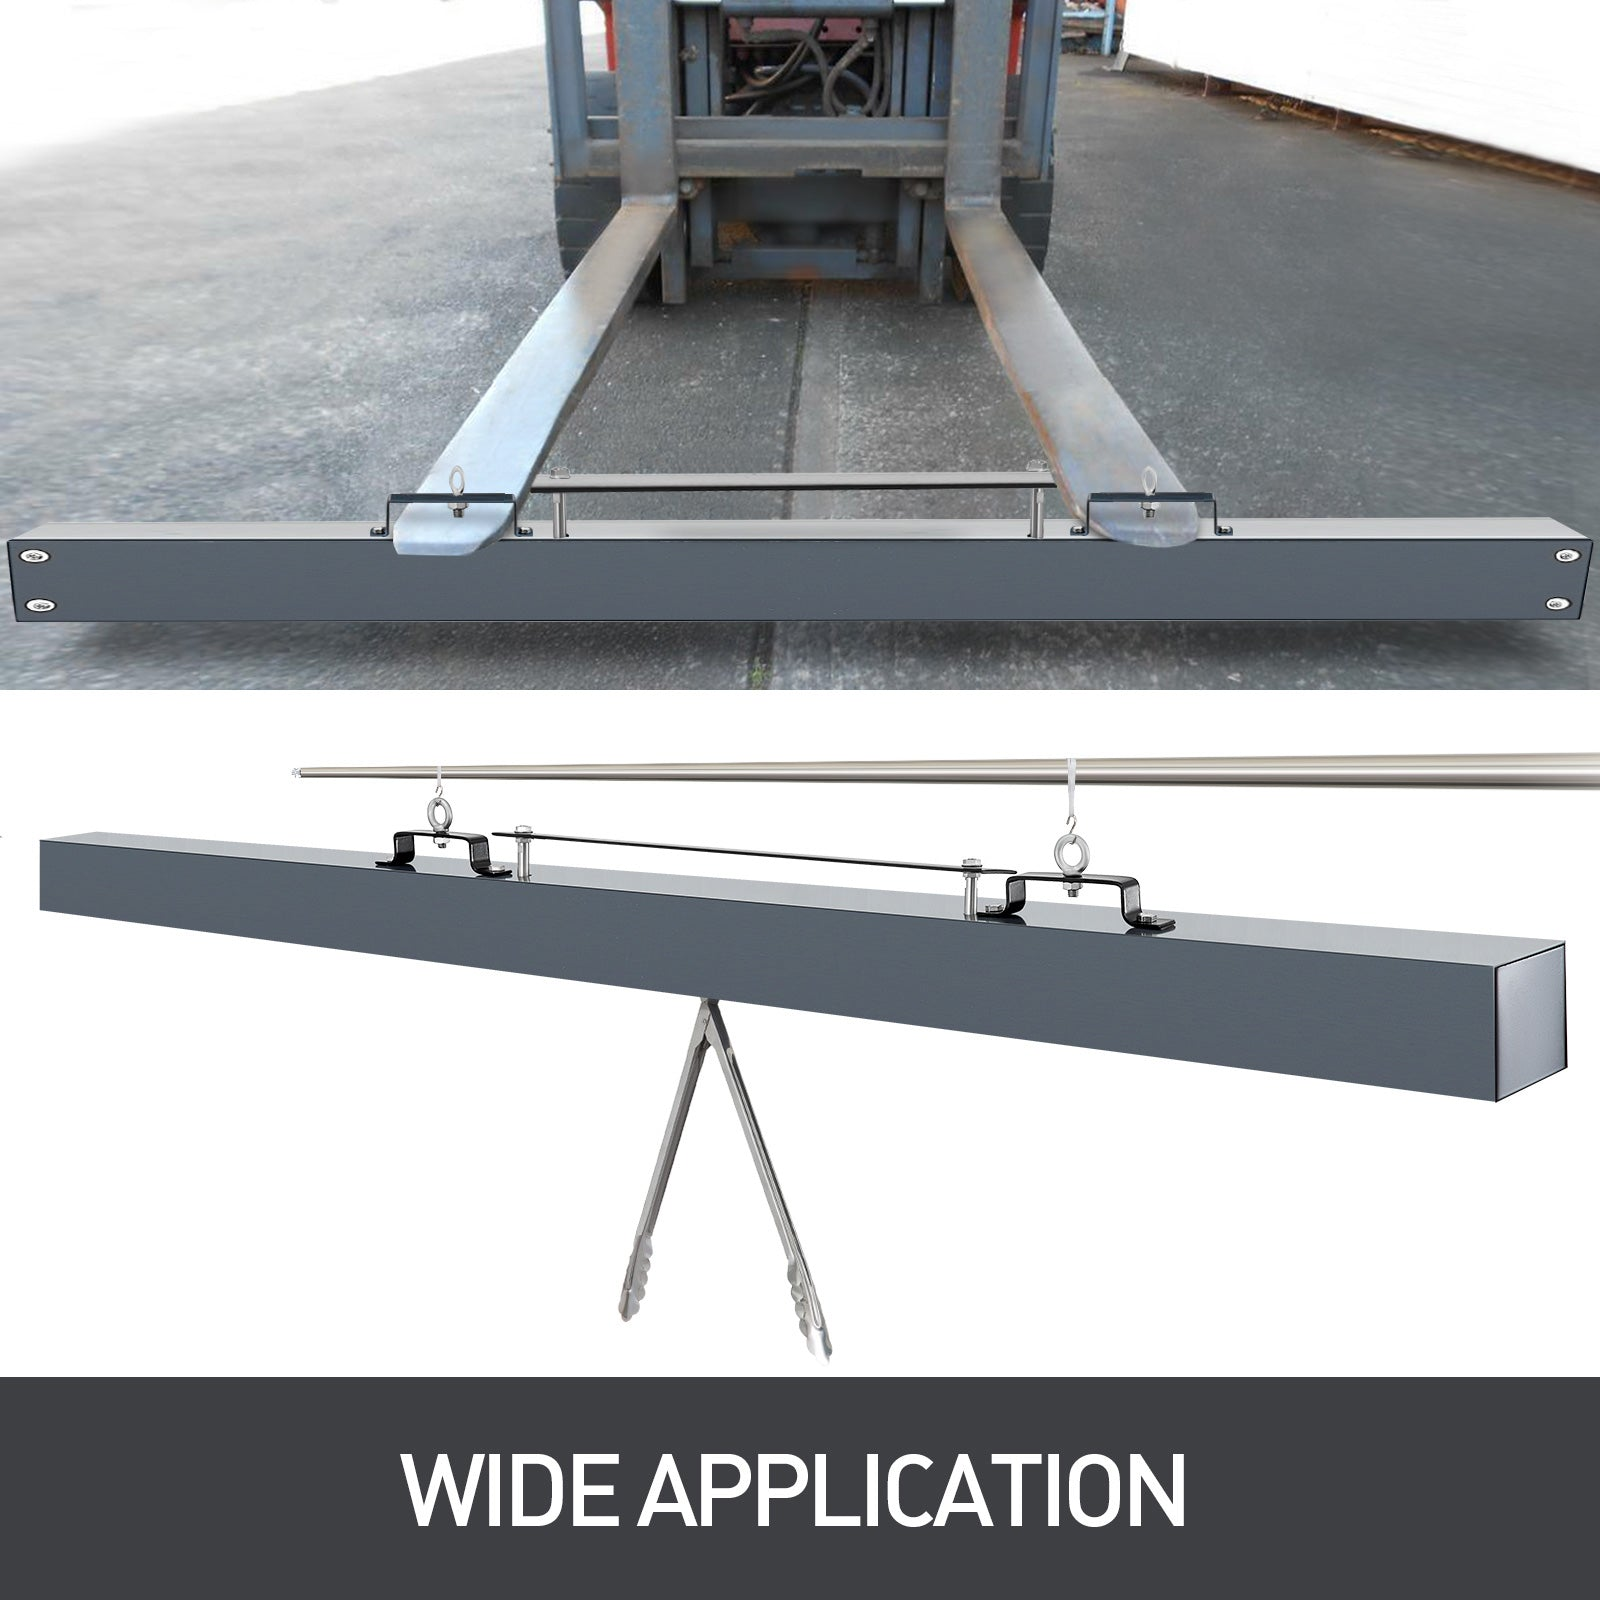 84 Inch Hanging Magnet Sweeper Magnet Bar W/ Quick Release Floor Driveway